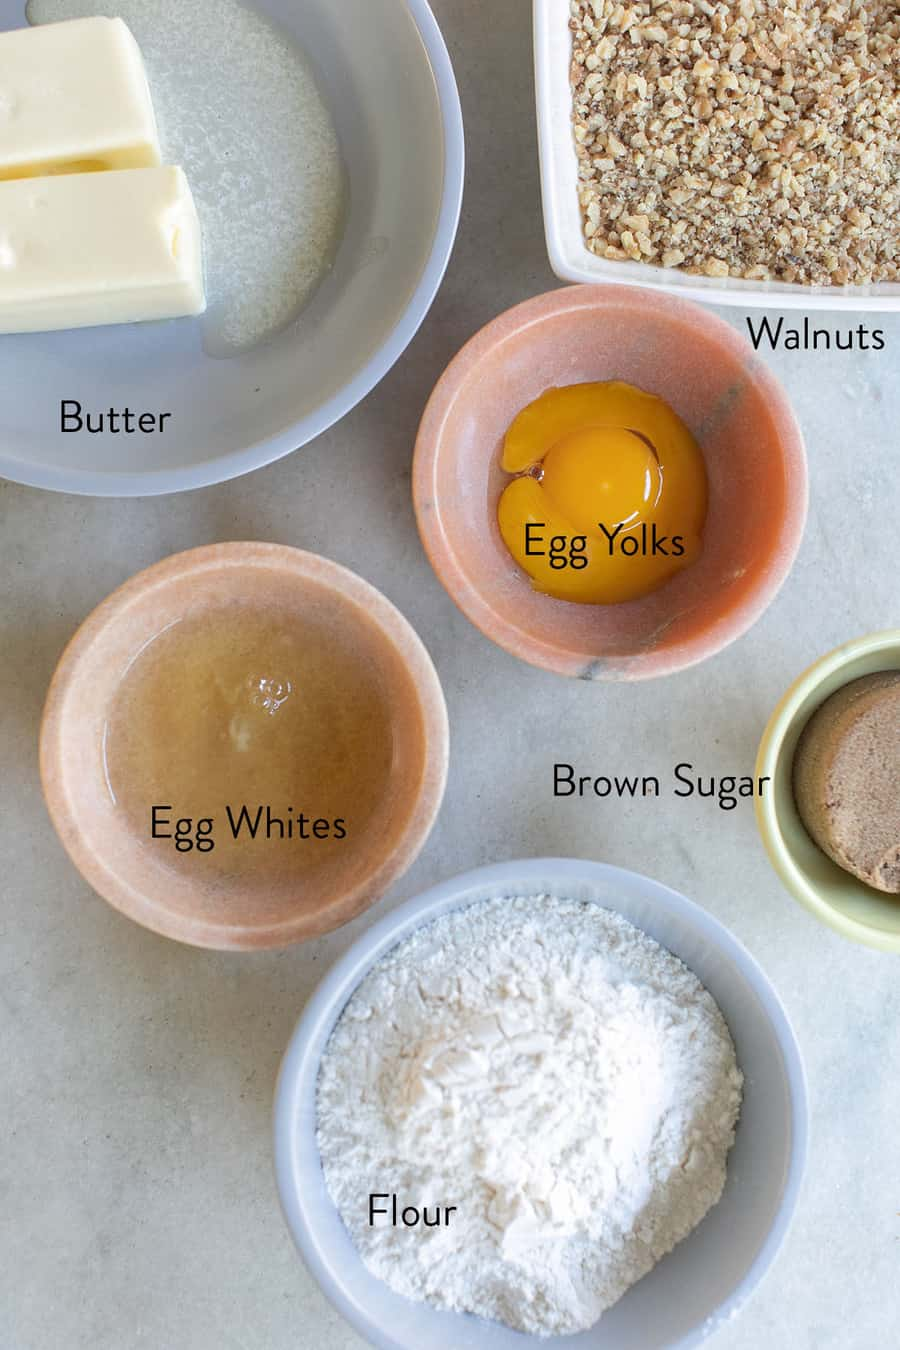 Butter, egg yolks, egg whites, flour, crushed walnuts and brown sugar in bowls on a marble table to make cookies.